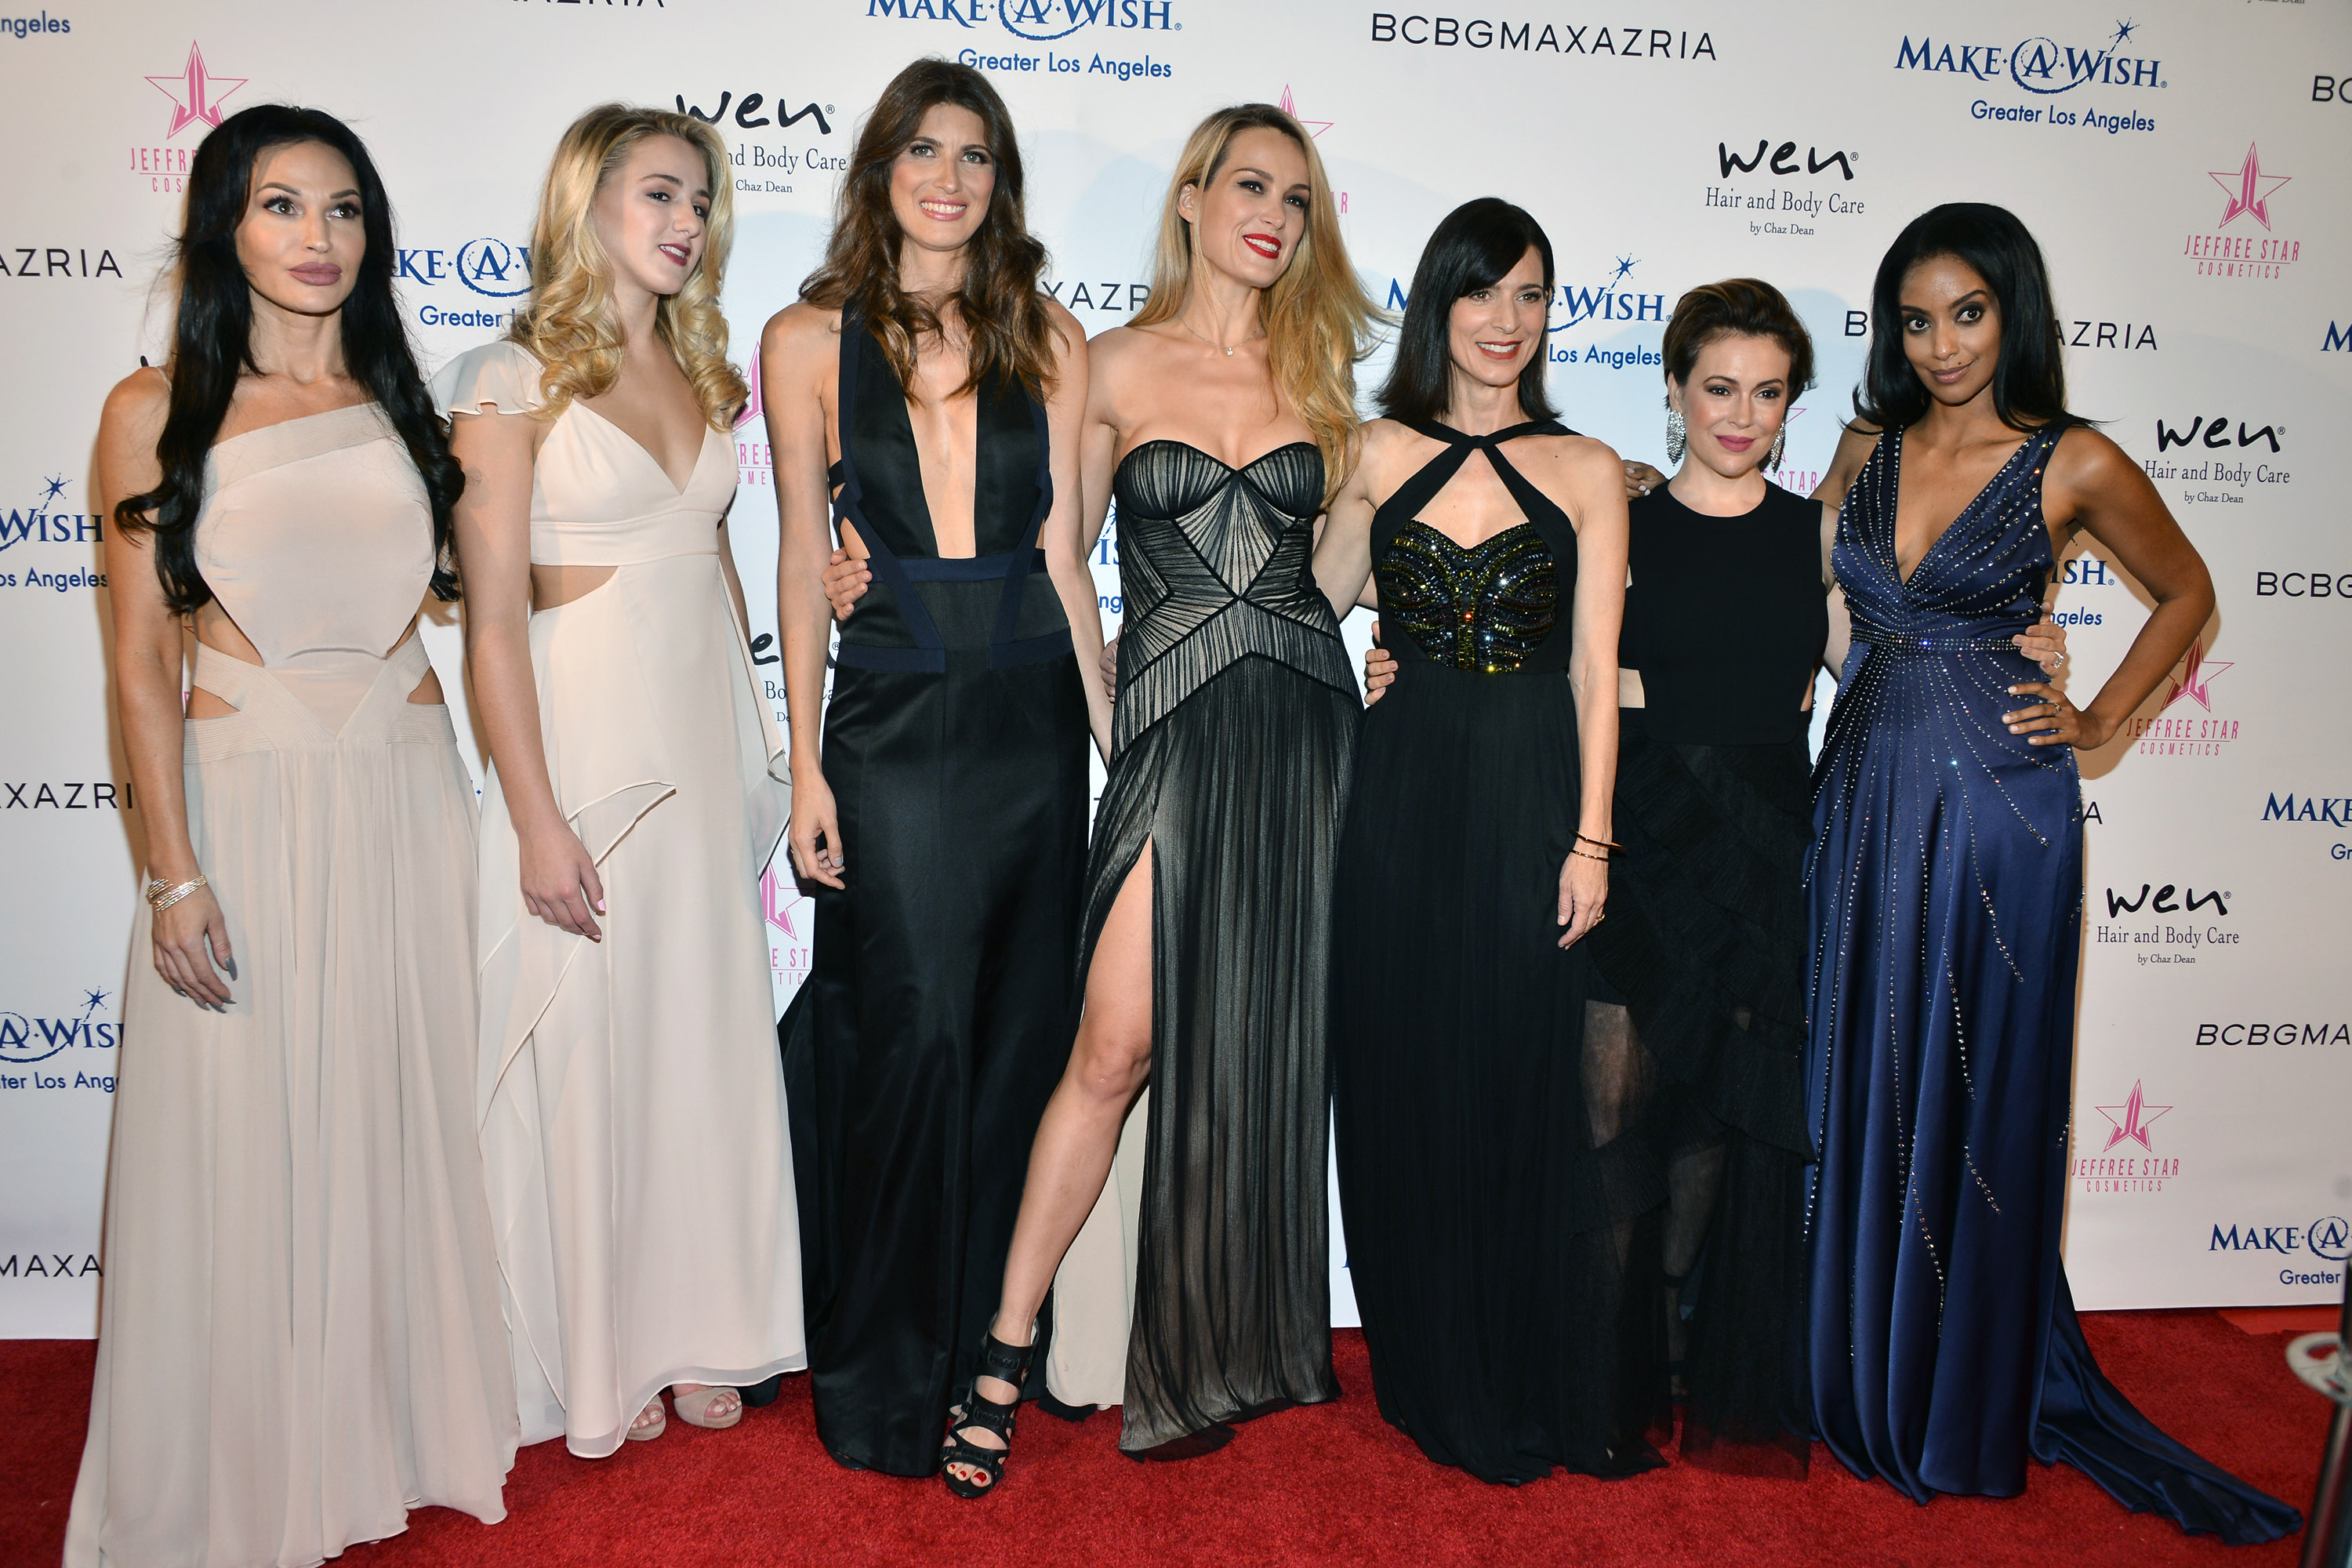 Night Out With Make-A-Wish & BCBGMAXAZRIA